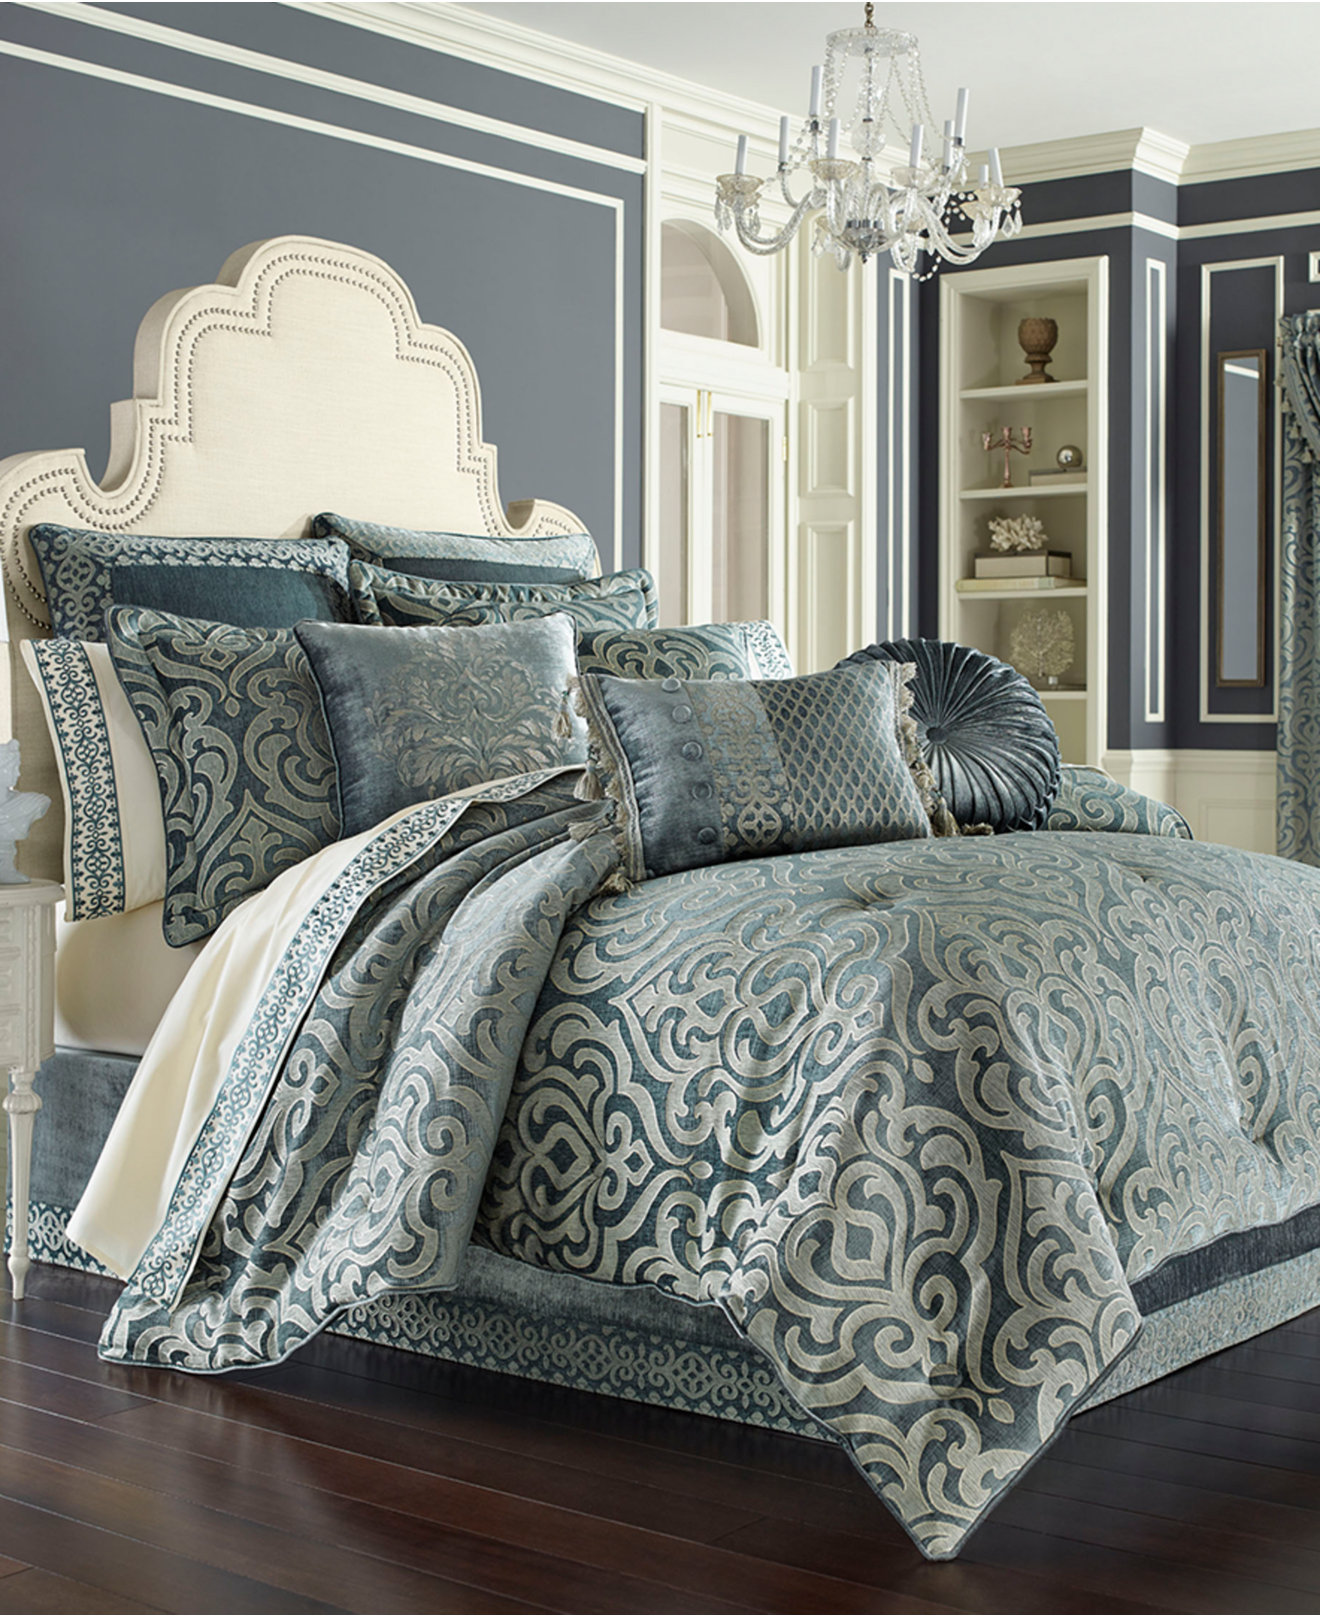 Queen new york luxembourg comforter set in antique silver bed - J Queen New York Sicily Teal Bedding Collection